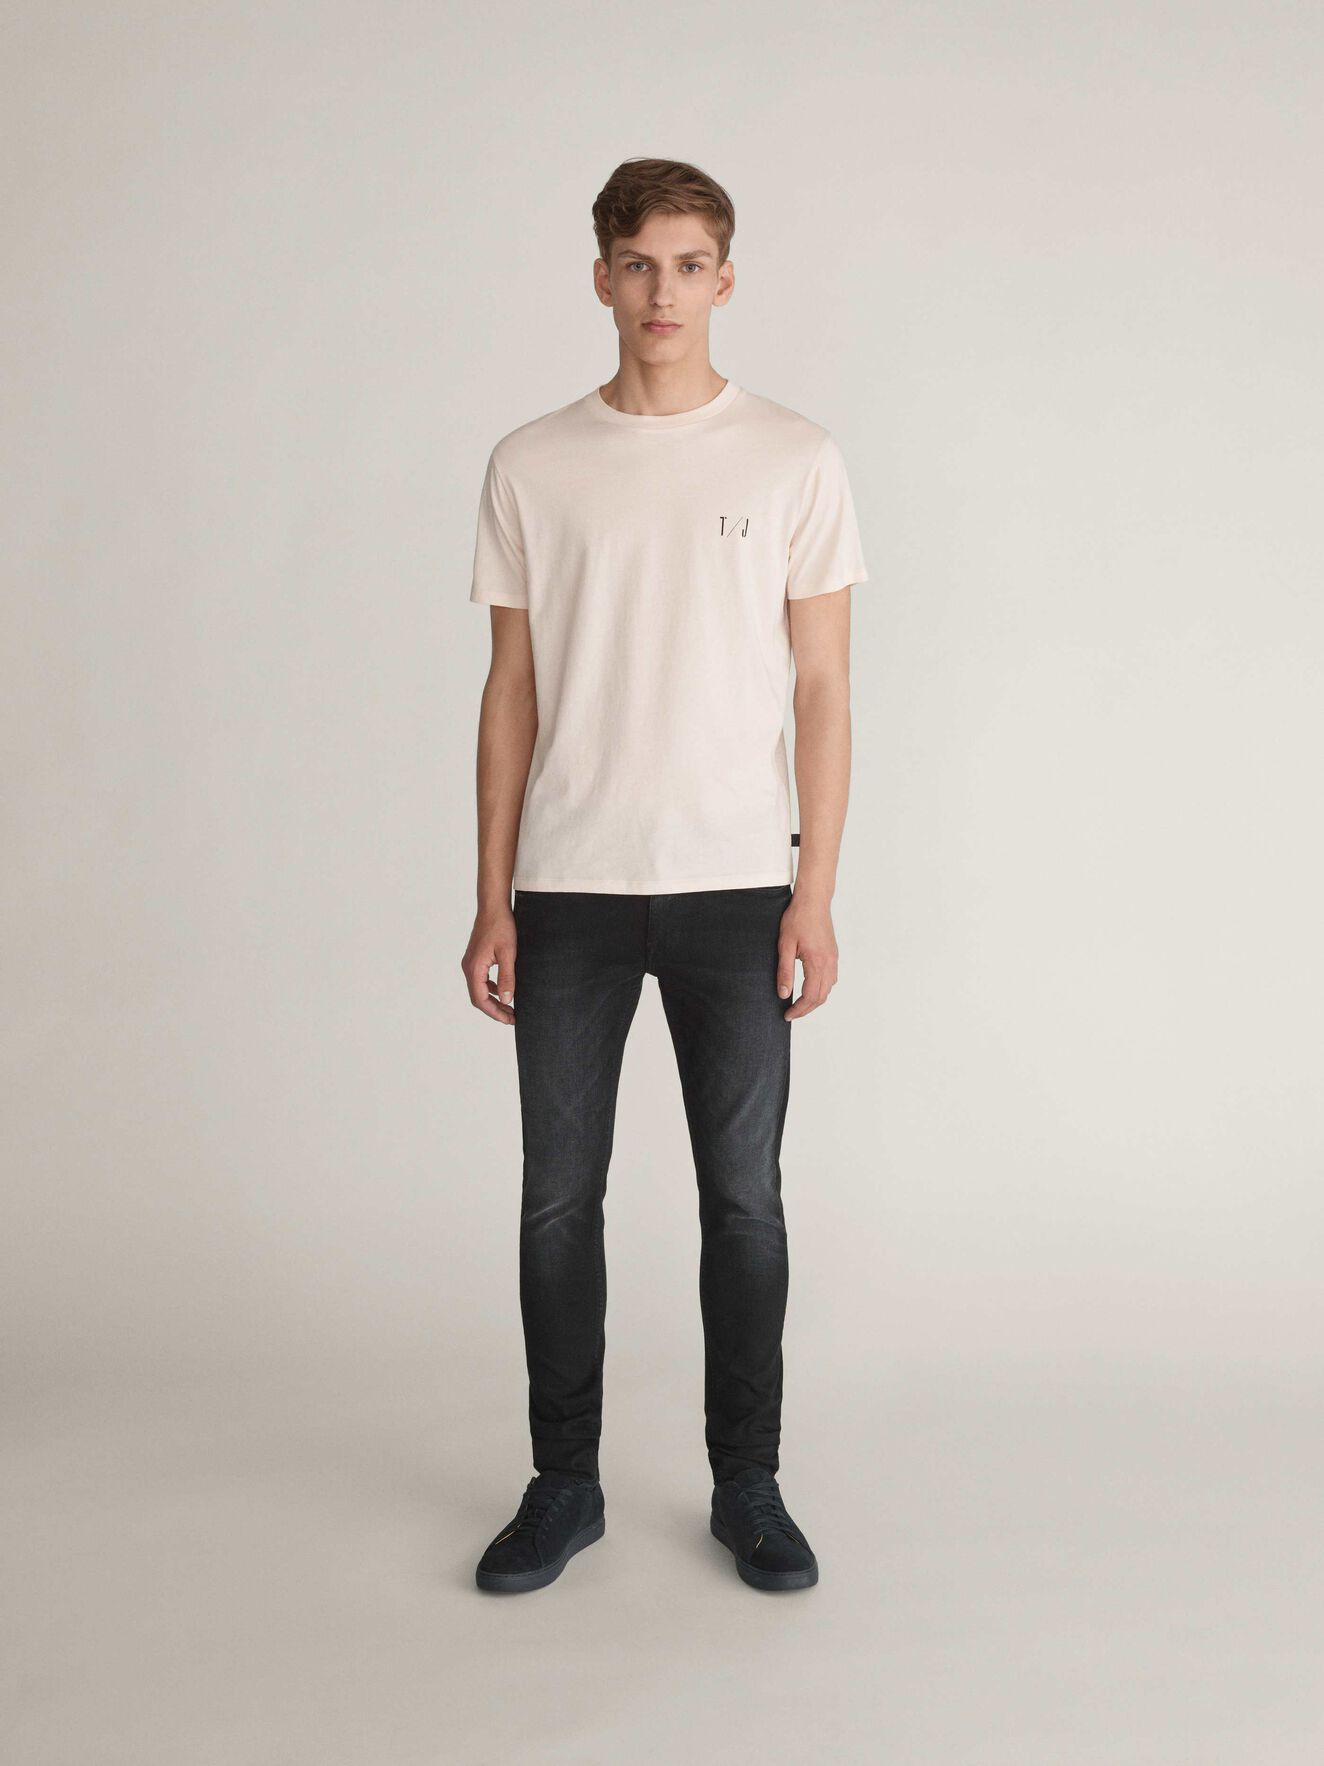 Fleek T-Shirt in Angel Wing from Tiger of Sweden